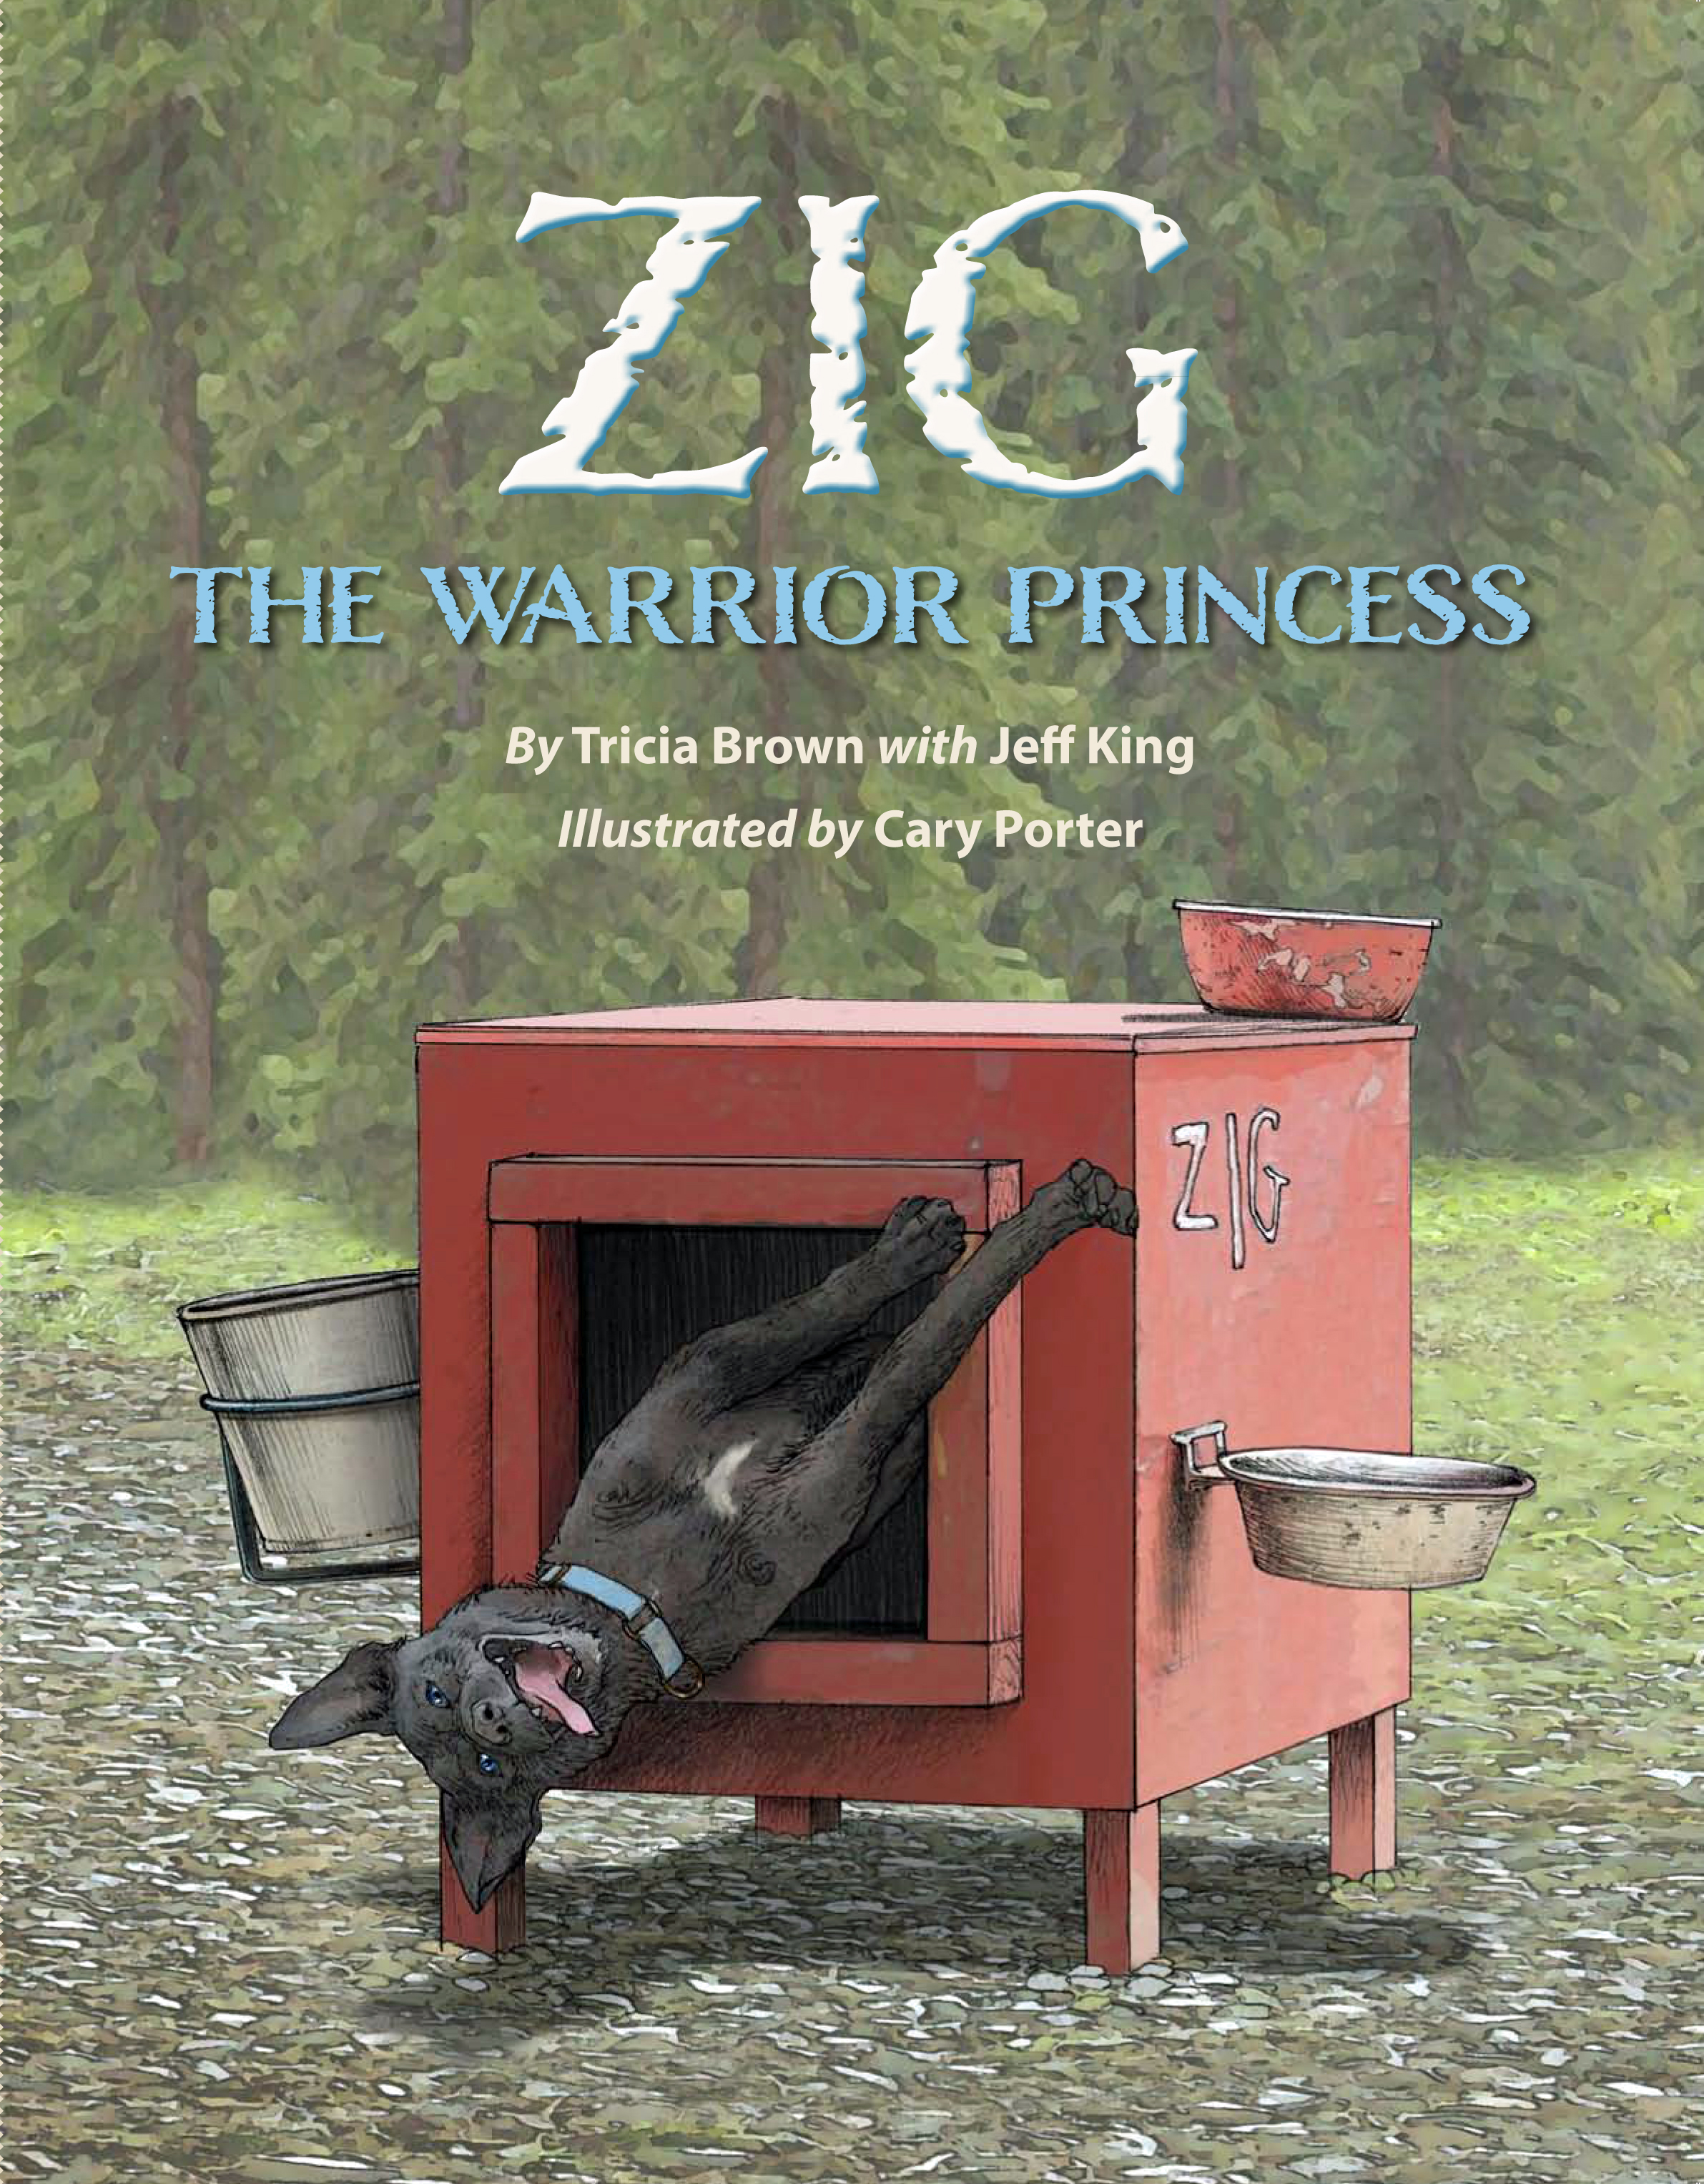 Cover image for Tricia Brown's picture book with Jeff King: Zig: The Warrior Princess.